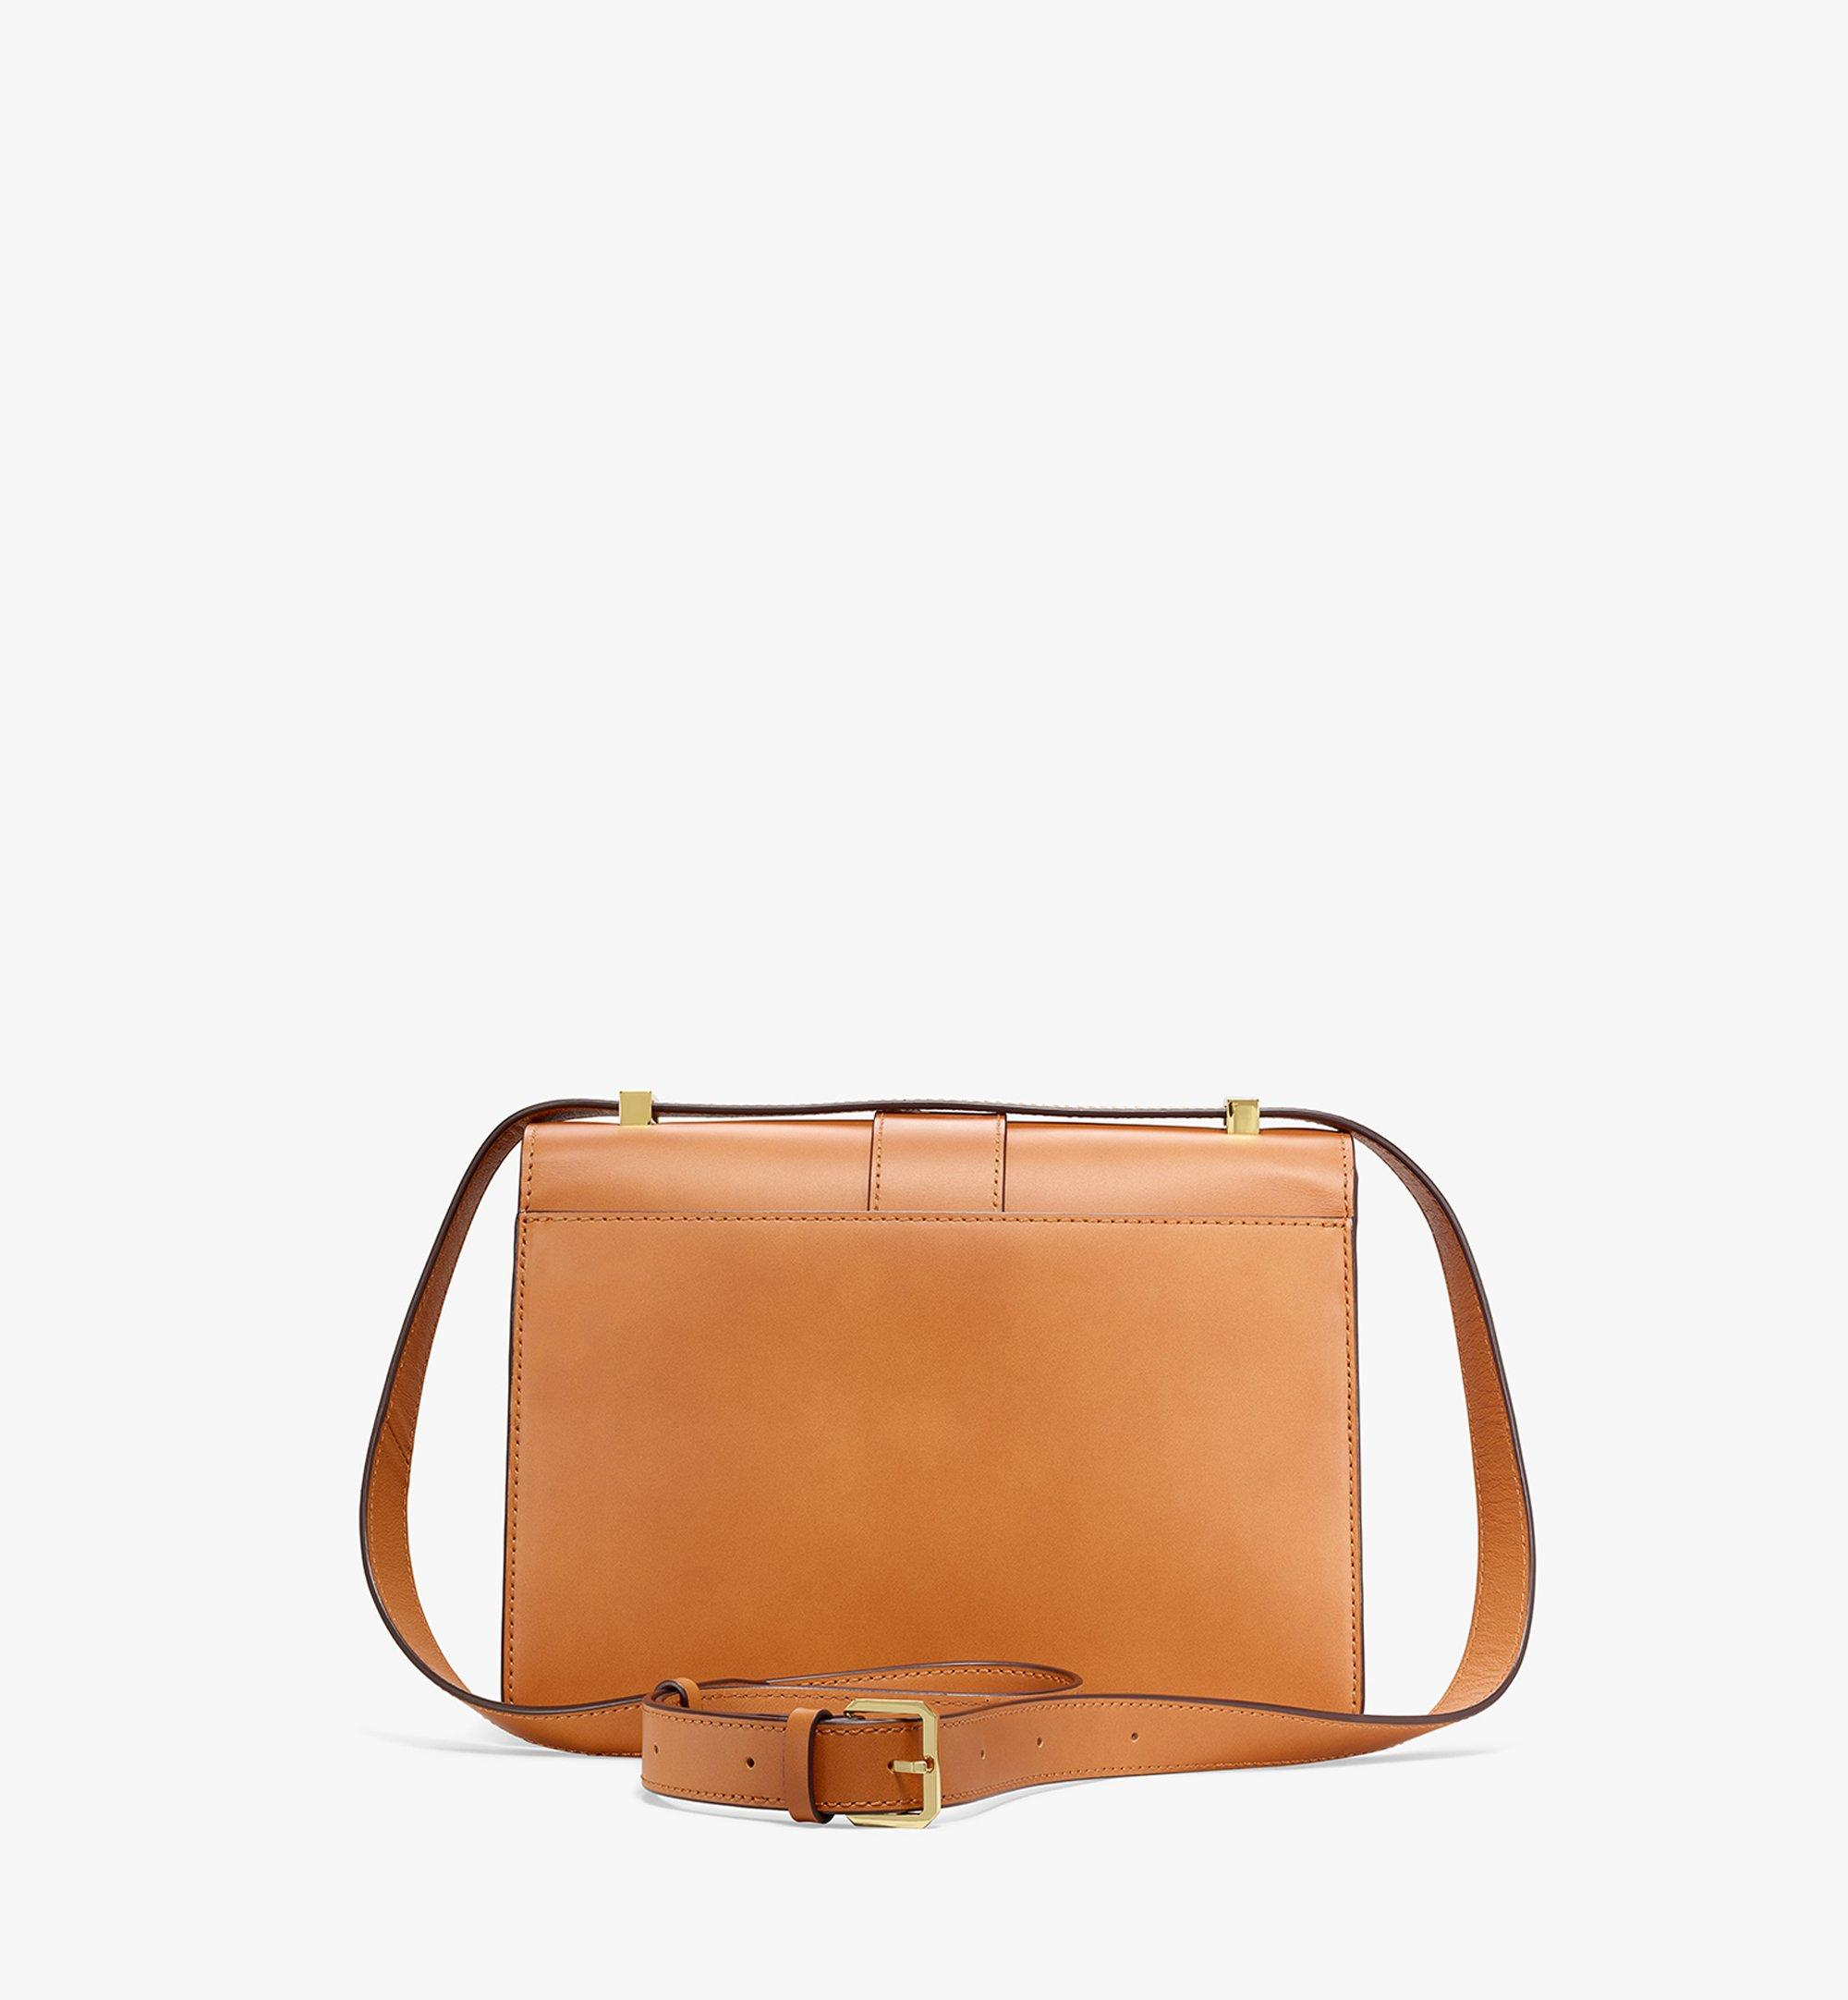 MCM Tracy Shoulder Bag in Visetos Leather Mix Cognac MWSBSXT01CO001 Alternate View 3